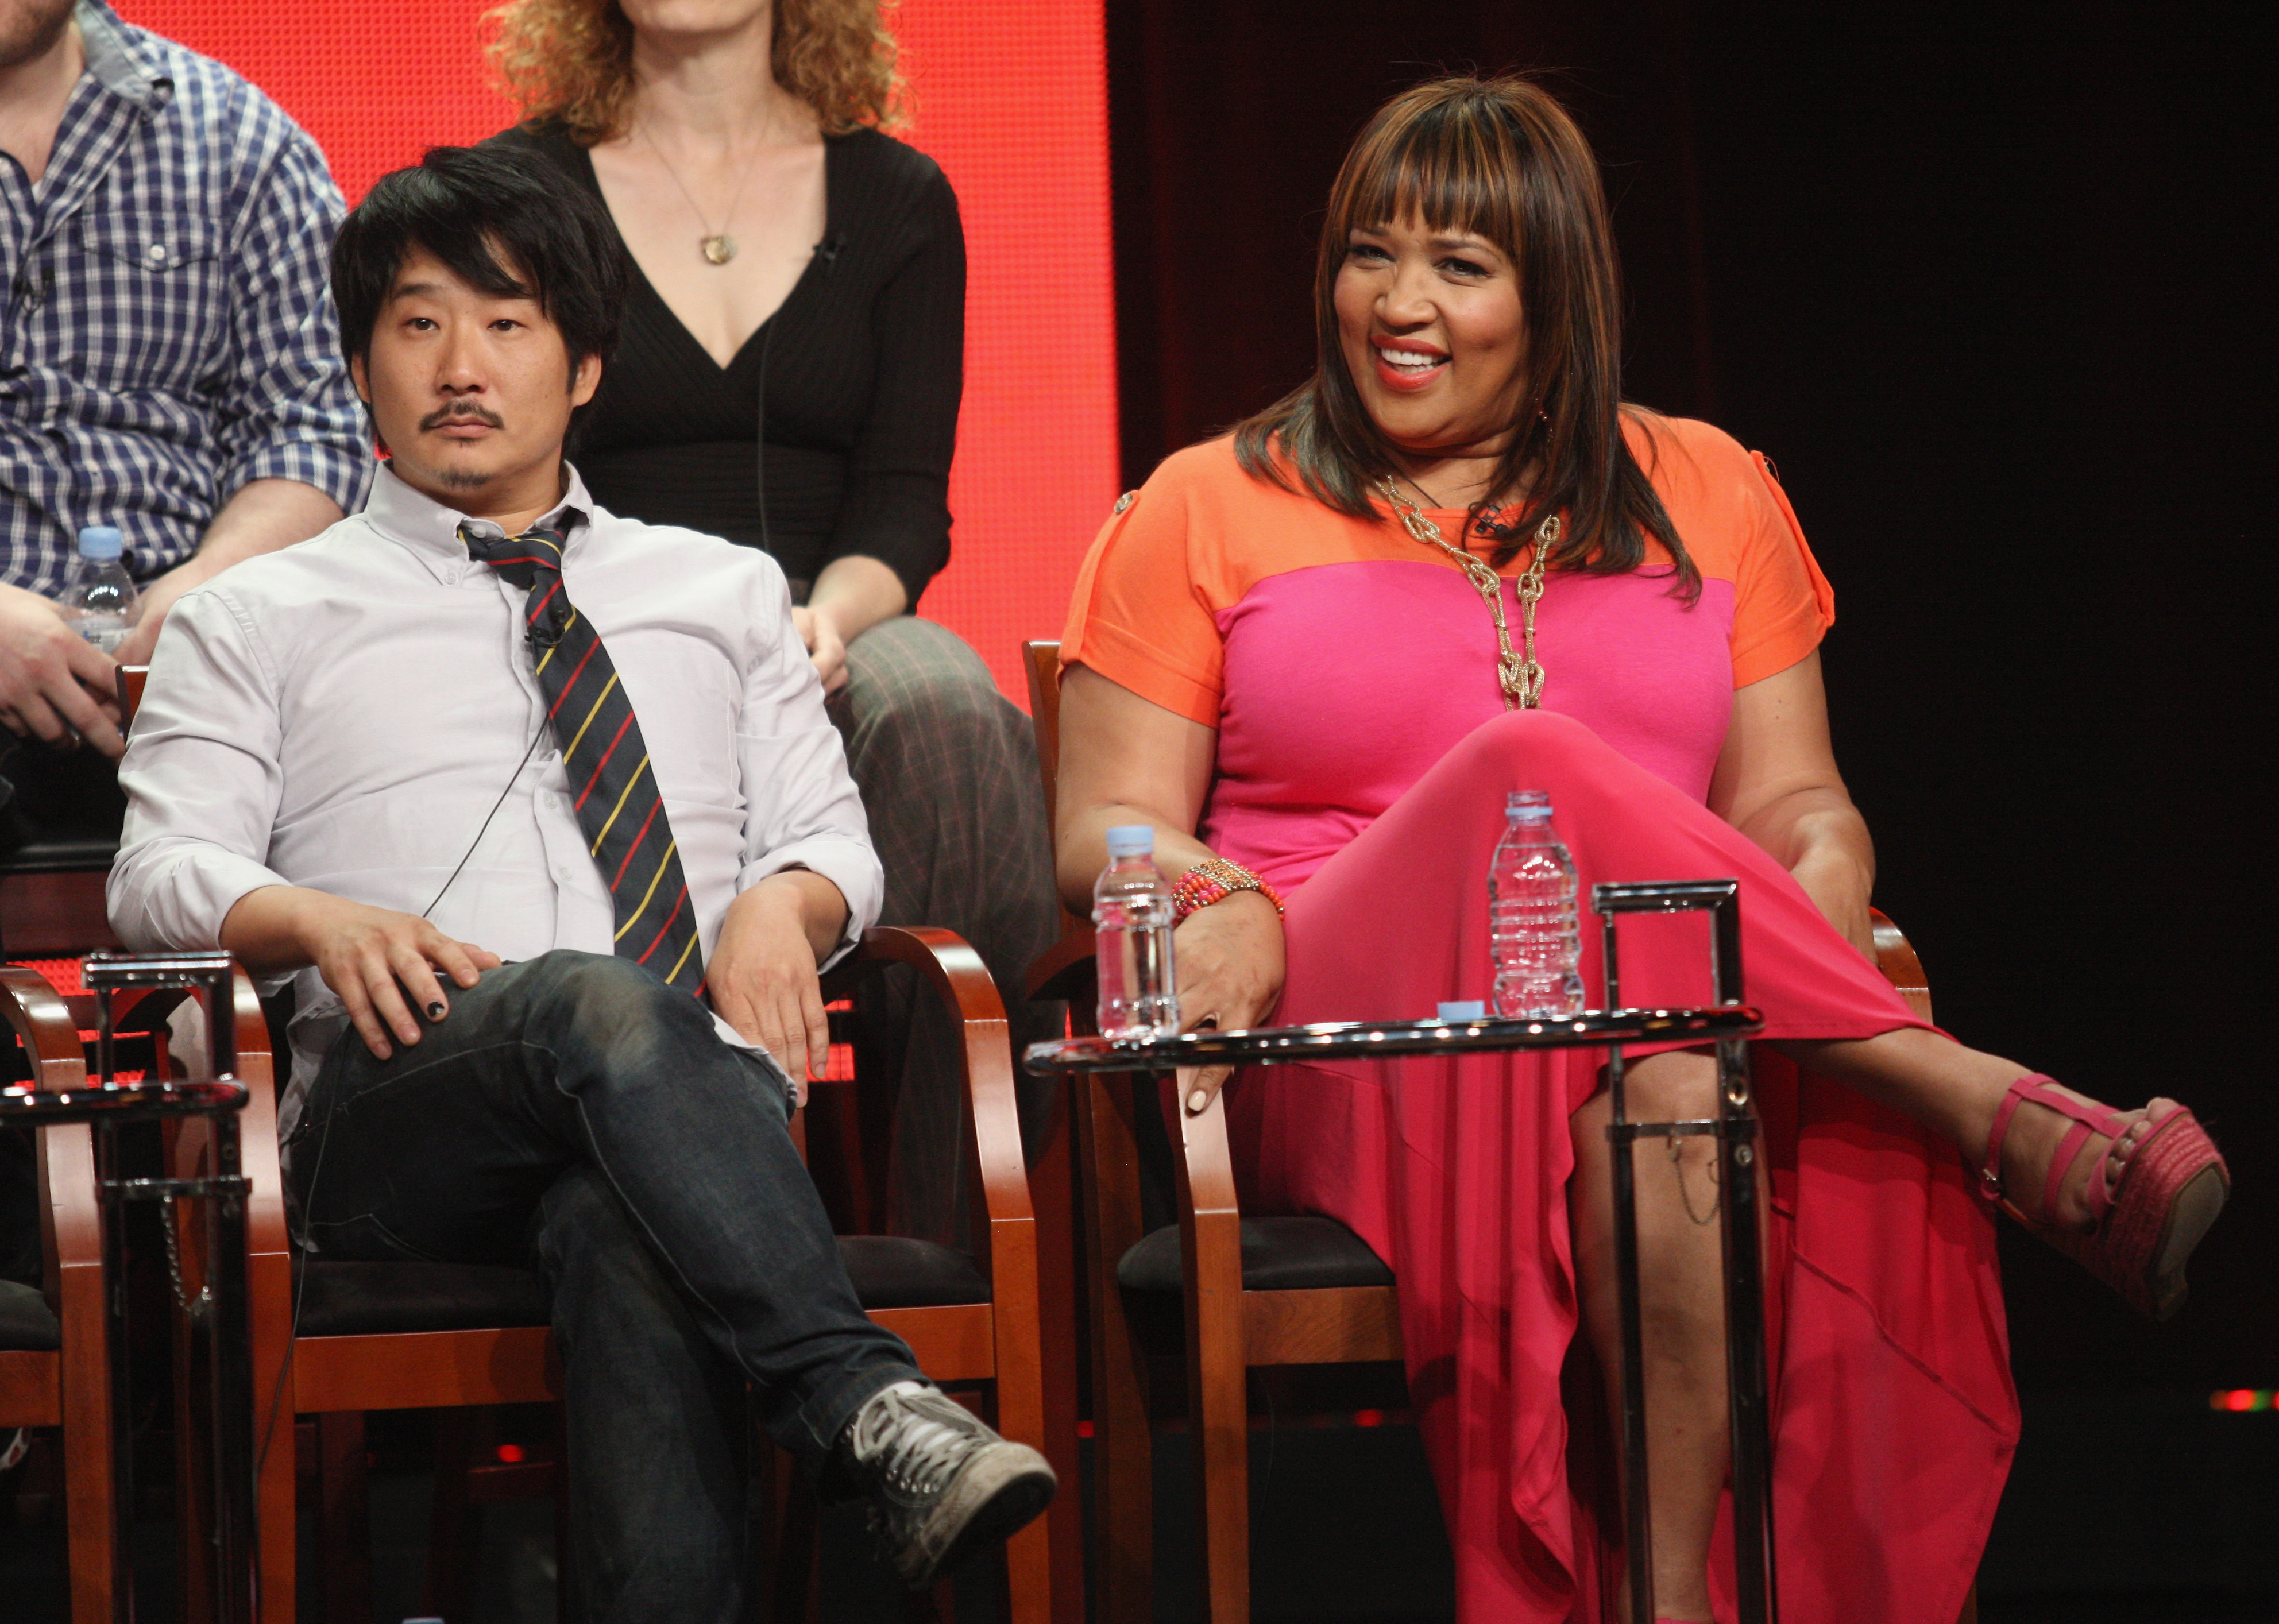 Bobby Lee sat next to his costar Kym Whitley at the show's panel.